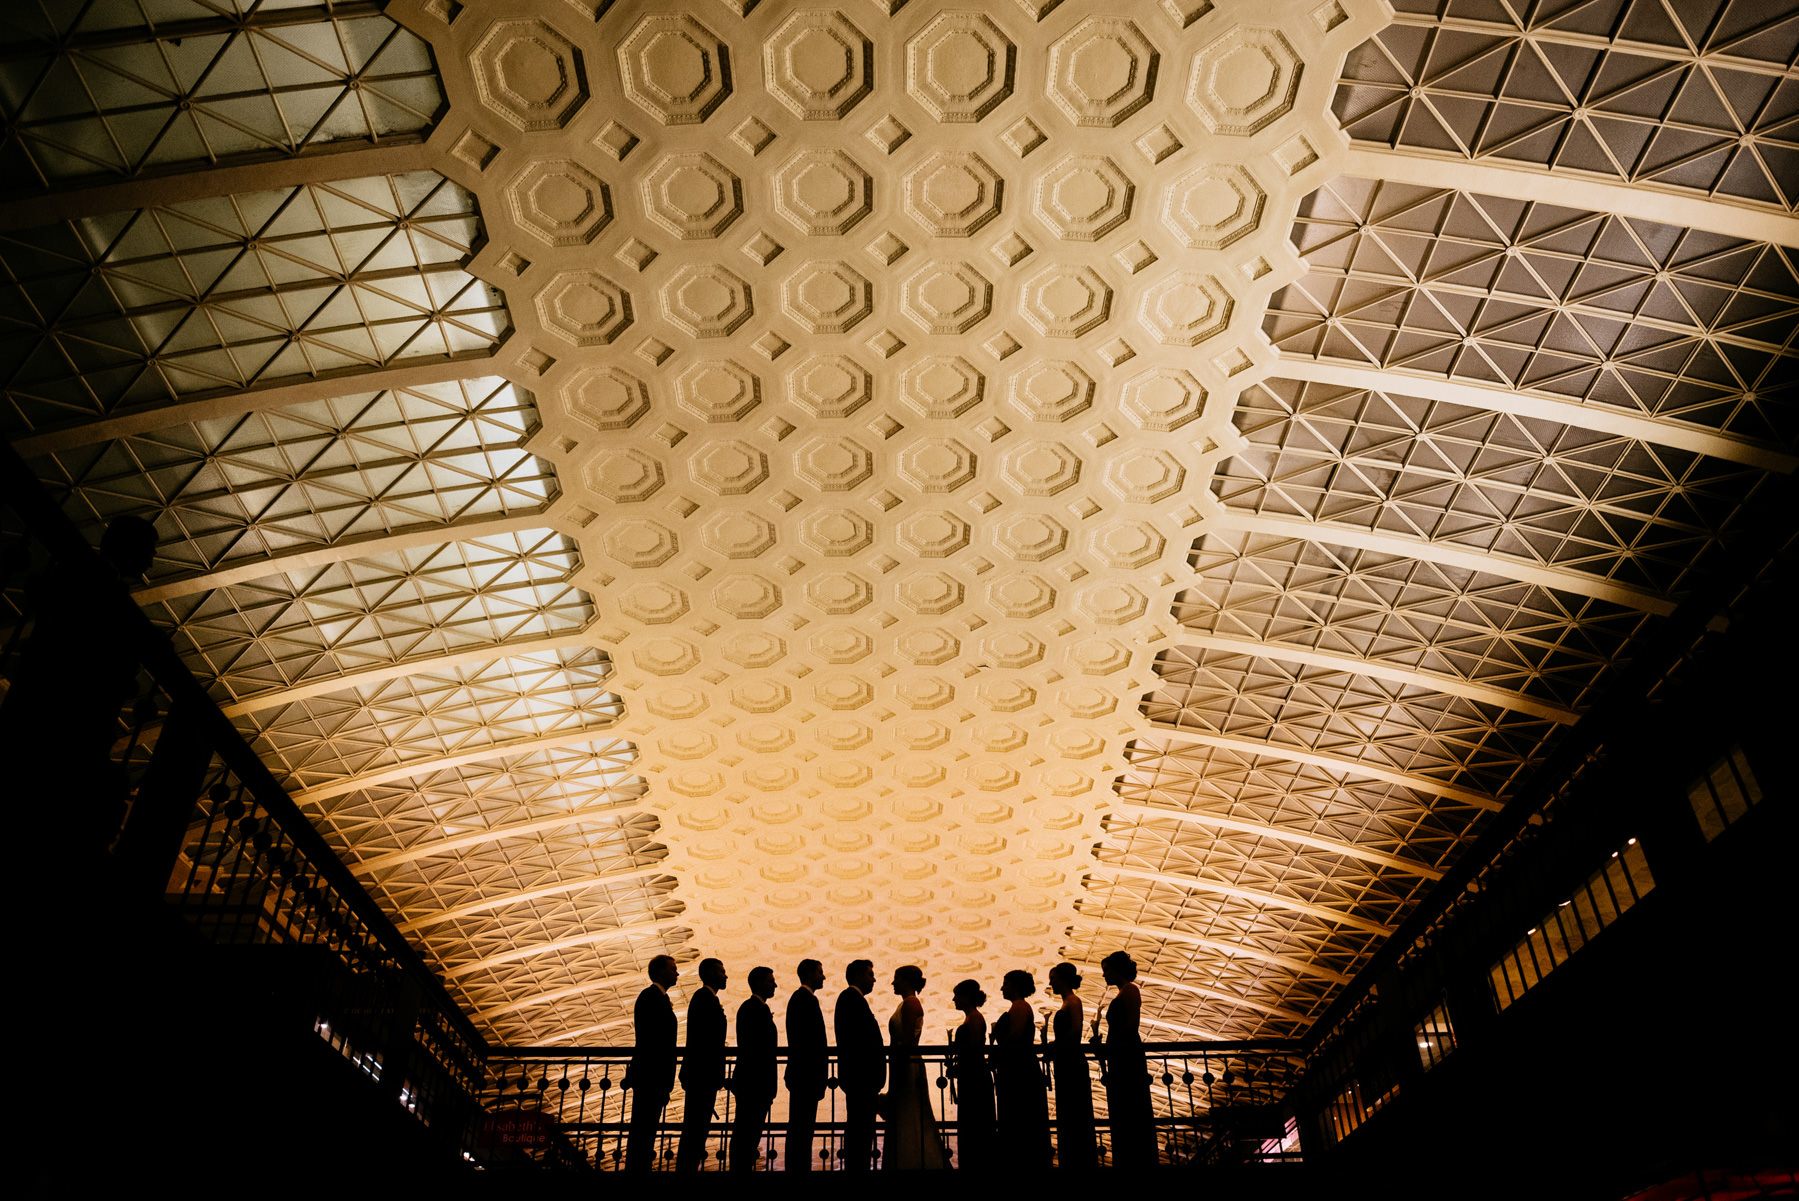 creative silhouette inside union station washington dc